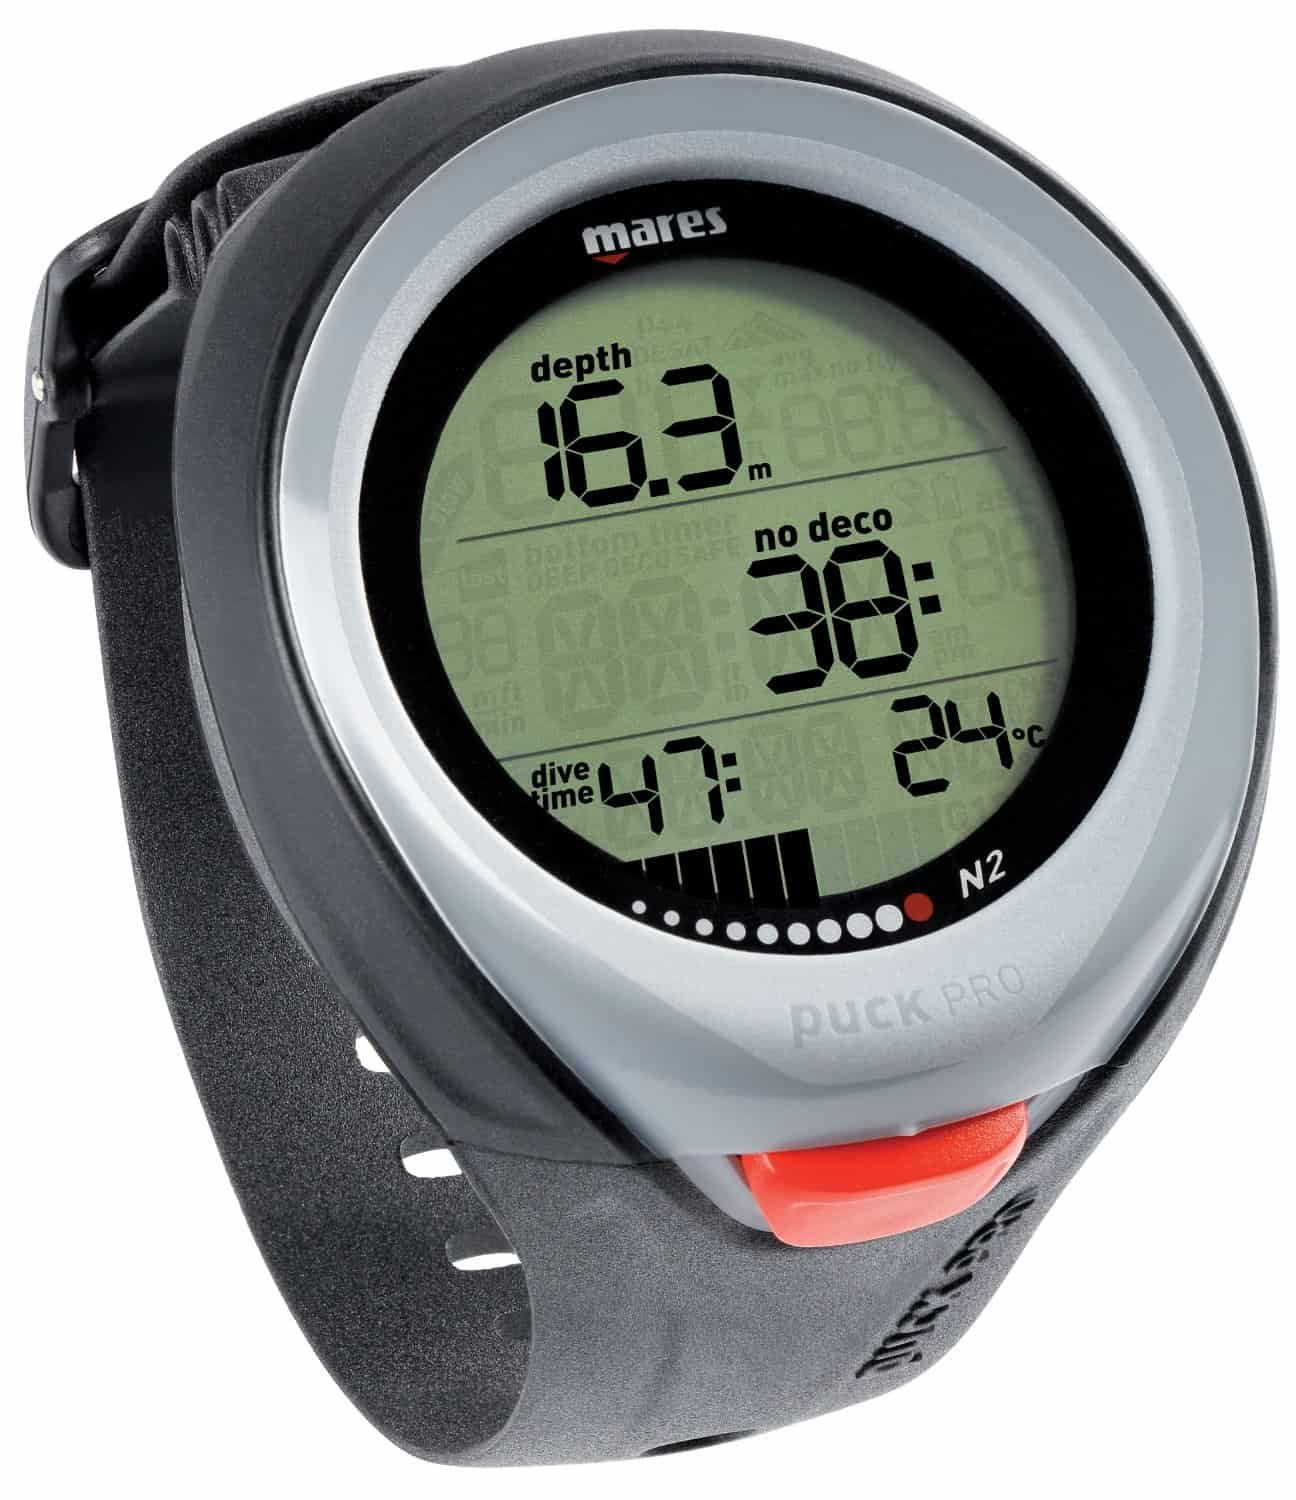 Puck Pro from Mares in black color